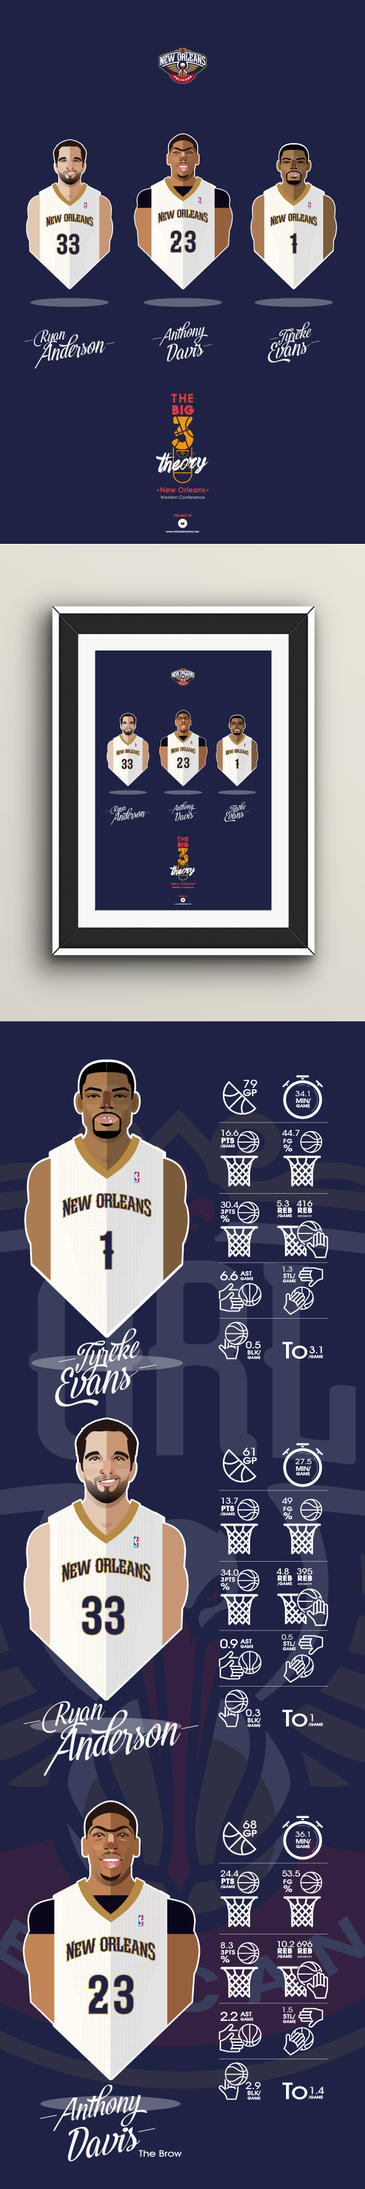 NEW ORLEANS PELICANS by 2m-at-work